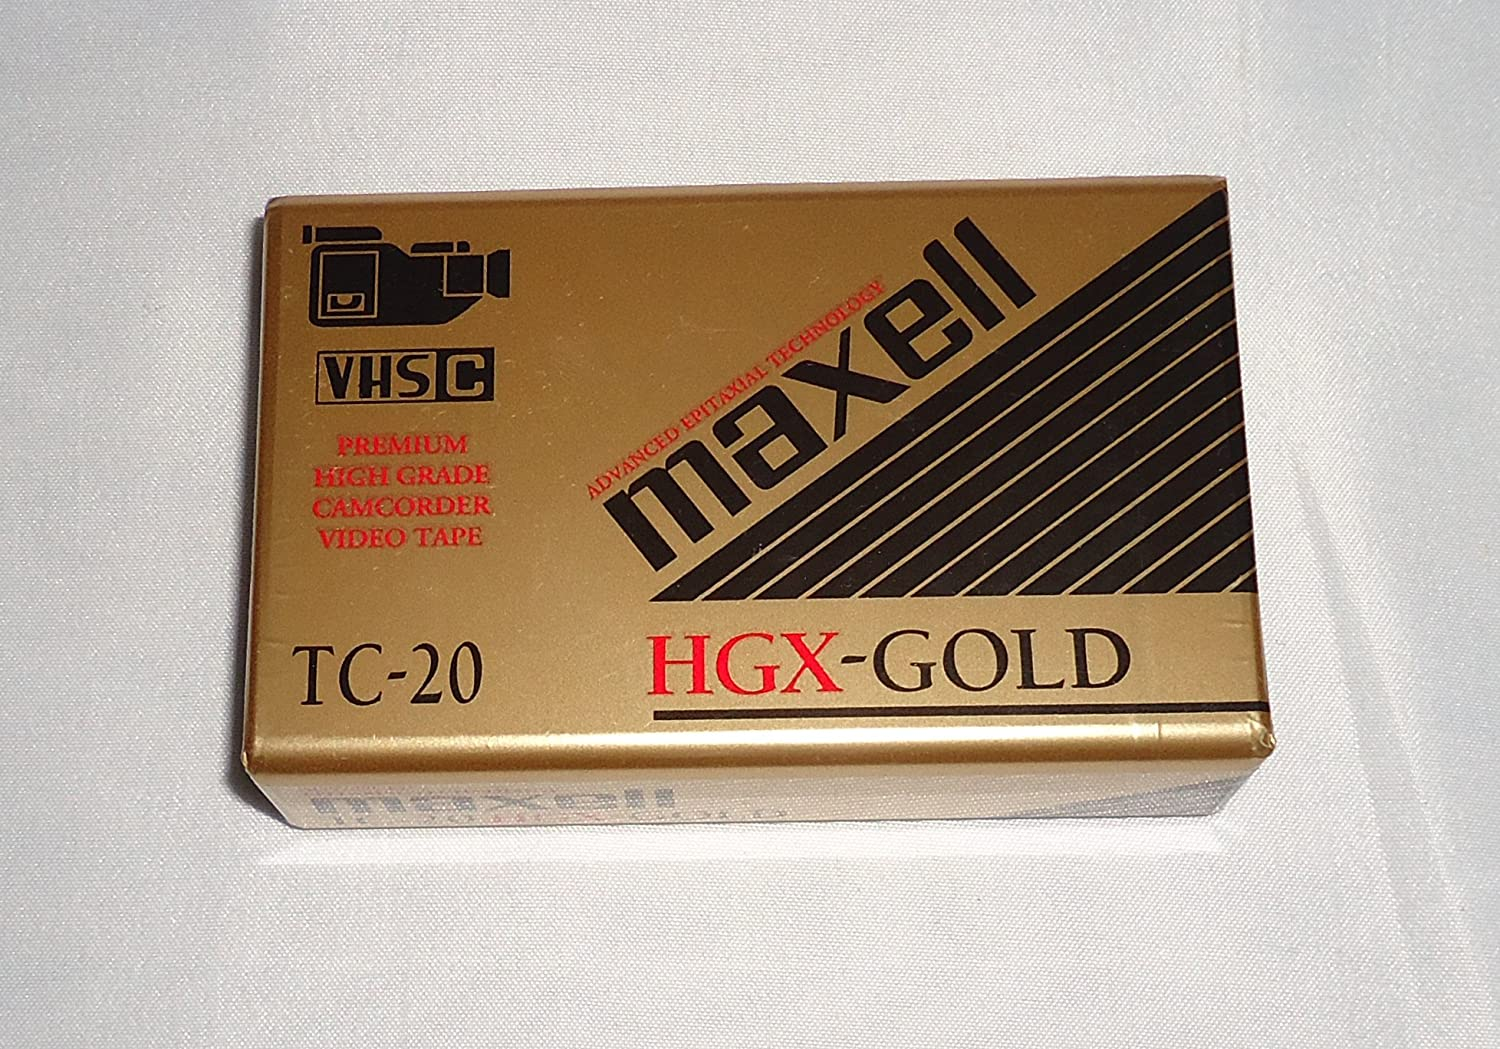 Maxell HGX-Gold 20 Special Event - Blank VHS-C Tape TC-20 HGX(G)